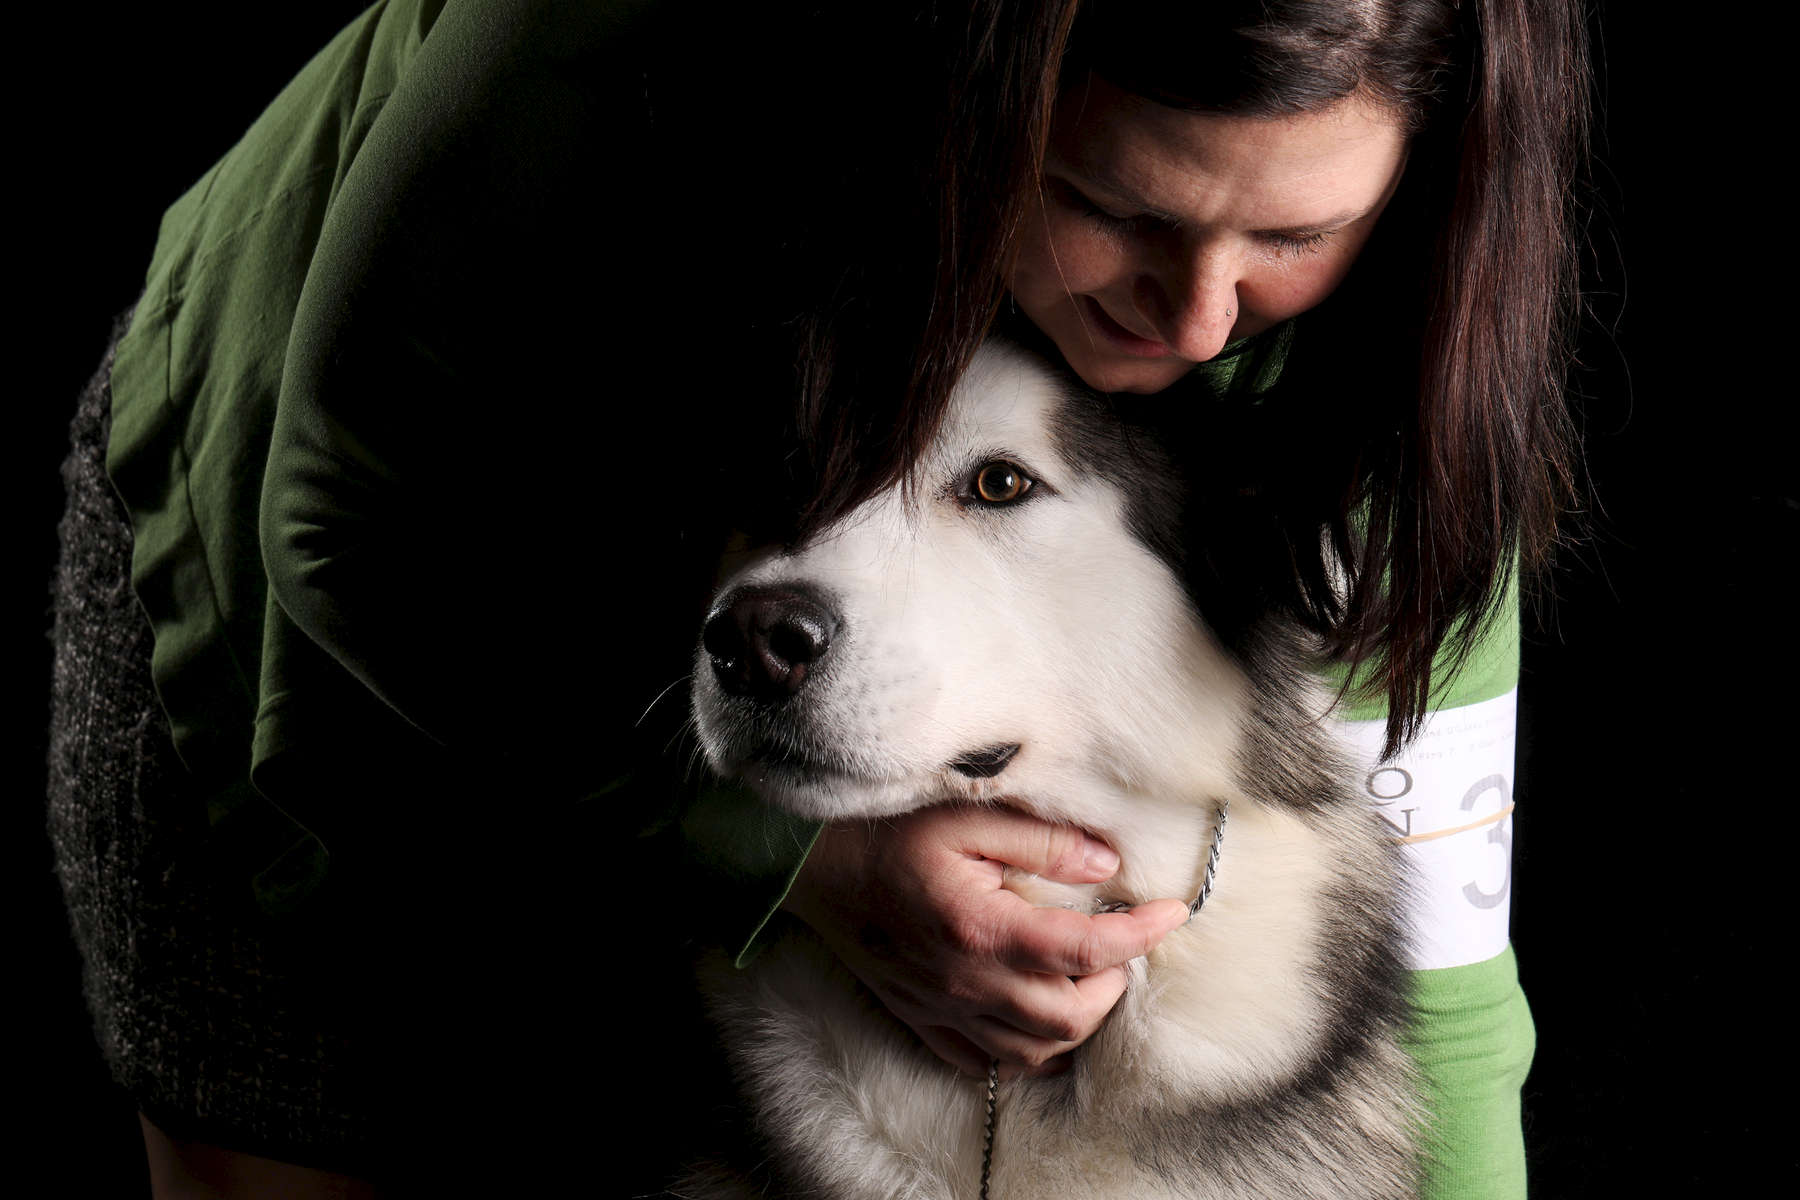 Relic, a 3-year-old Alaskan Malamute, shown by Sabrina Czarapata